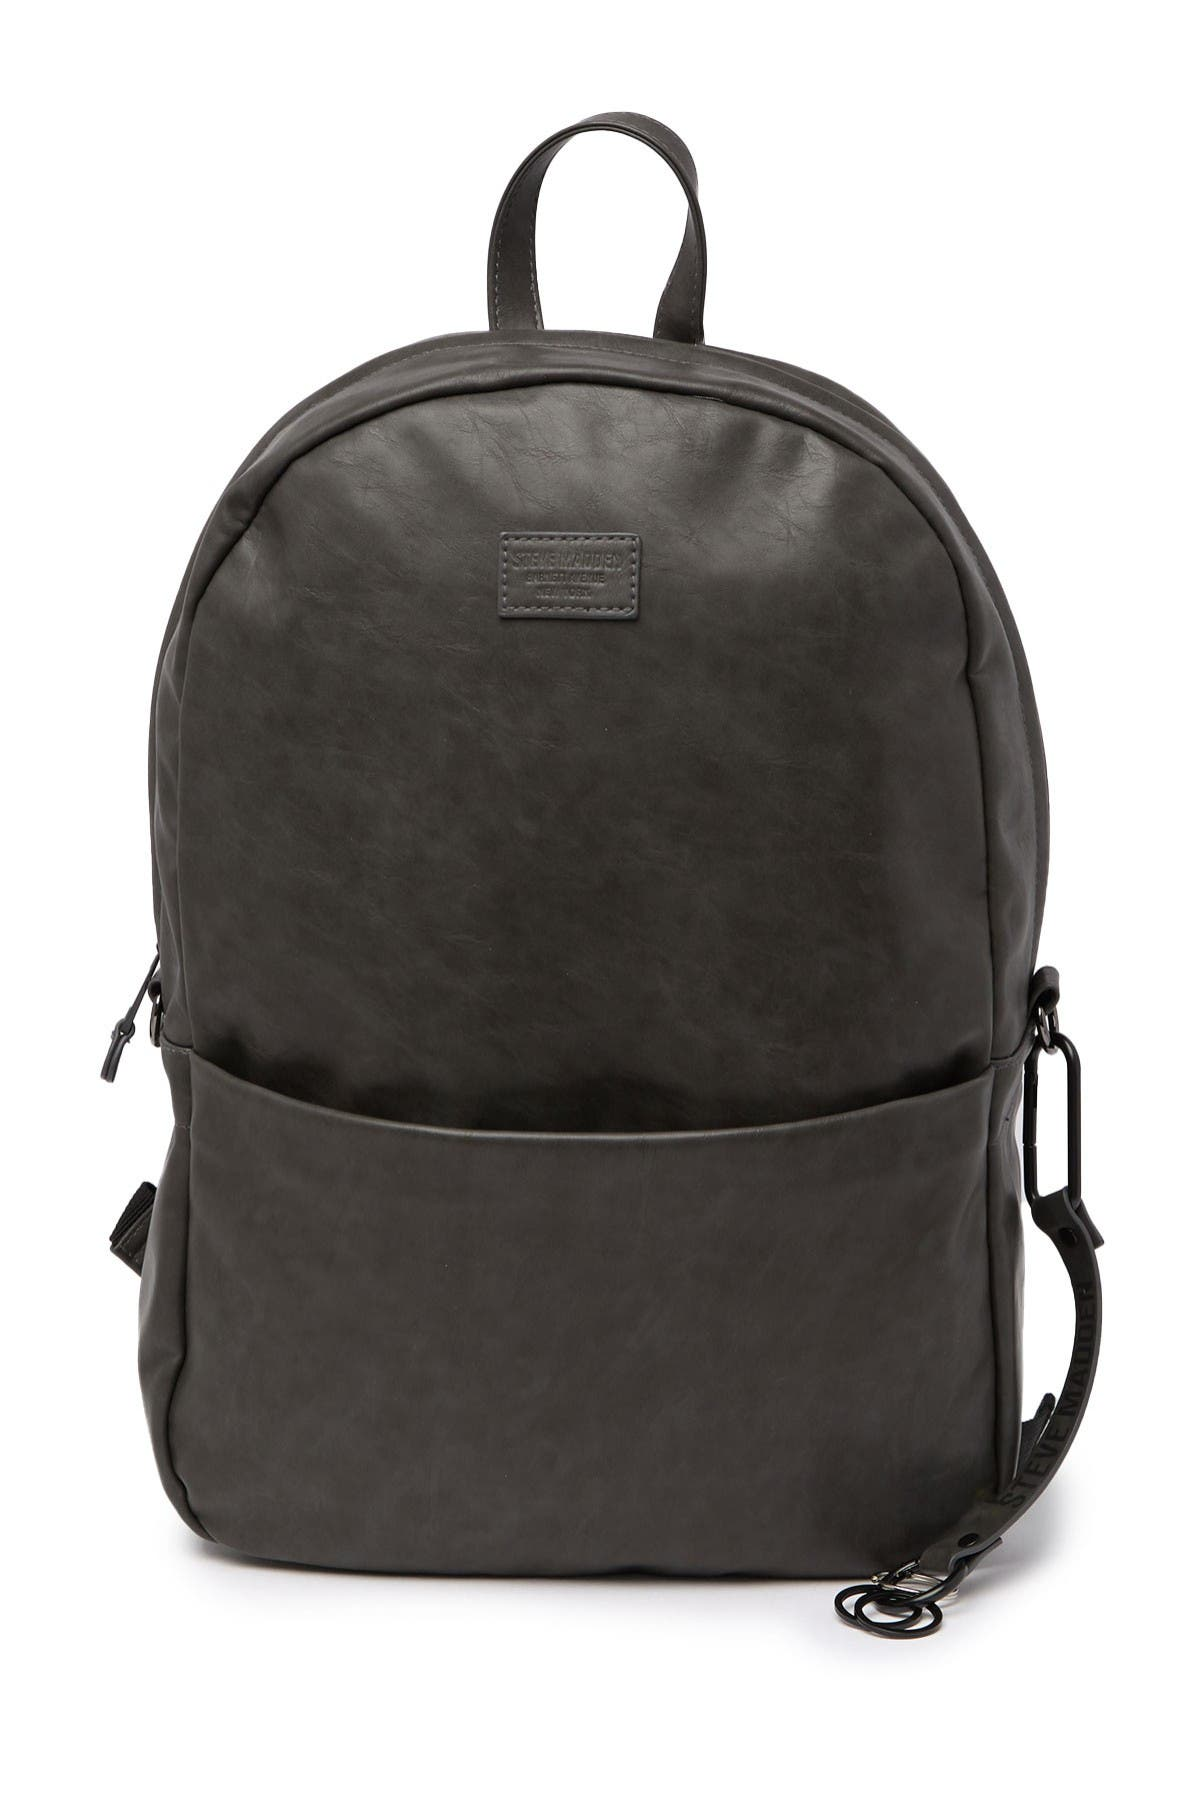 Image of Steve Madden Front Pocket Backpack